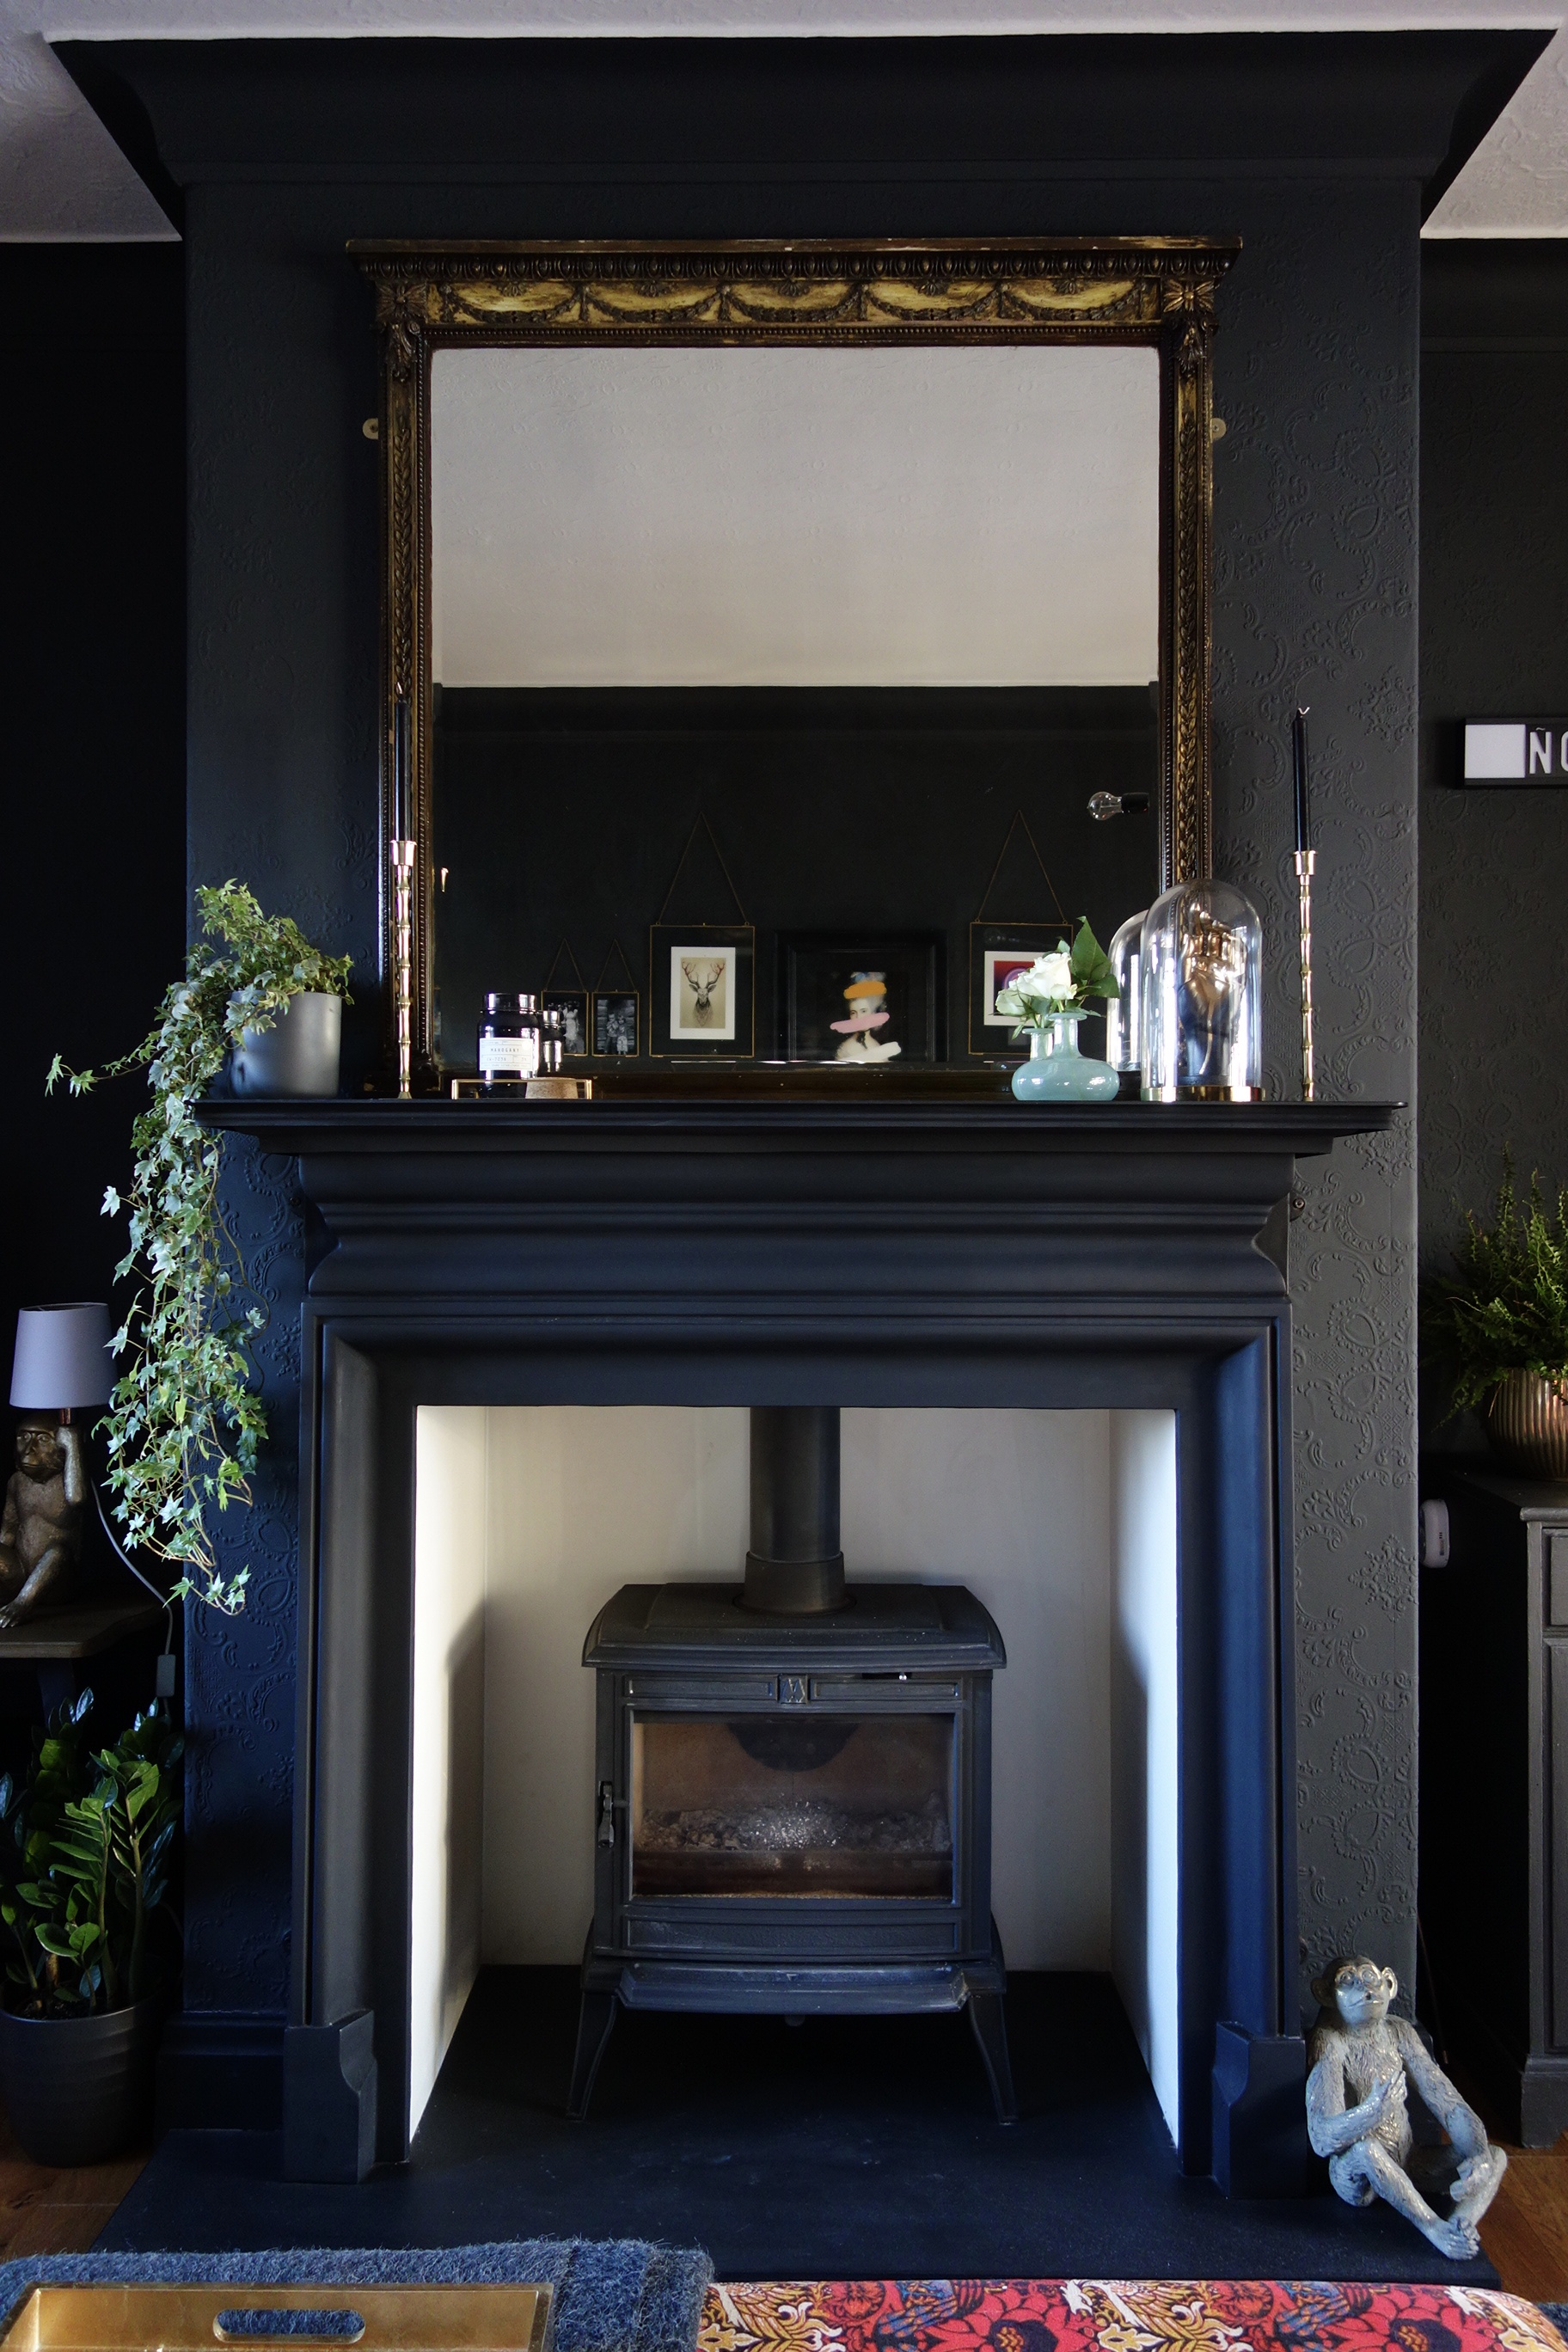 Log Burner & Fireplace